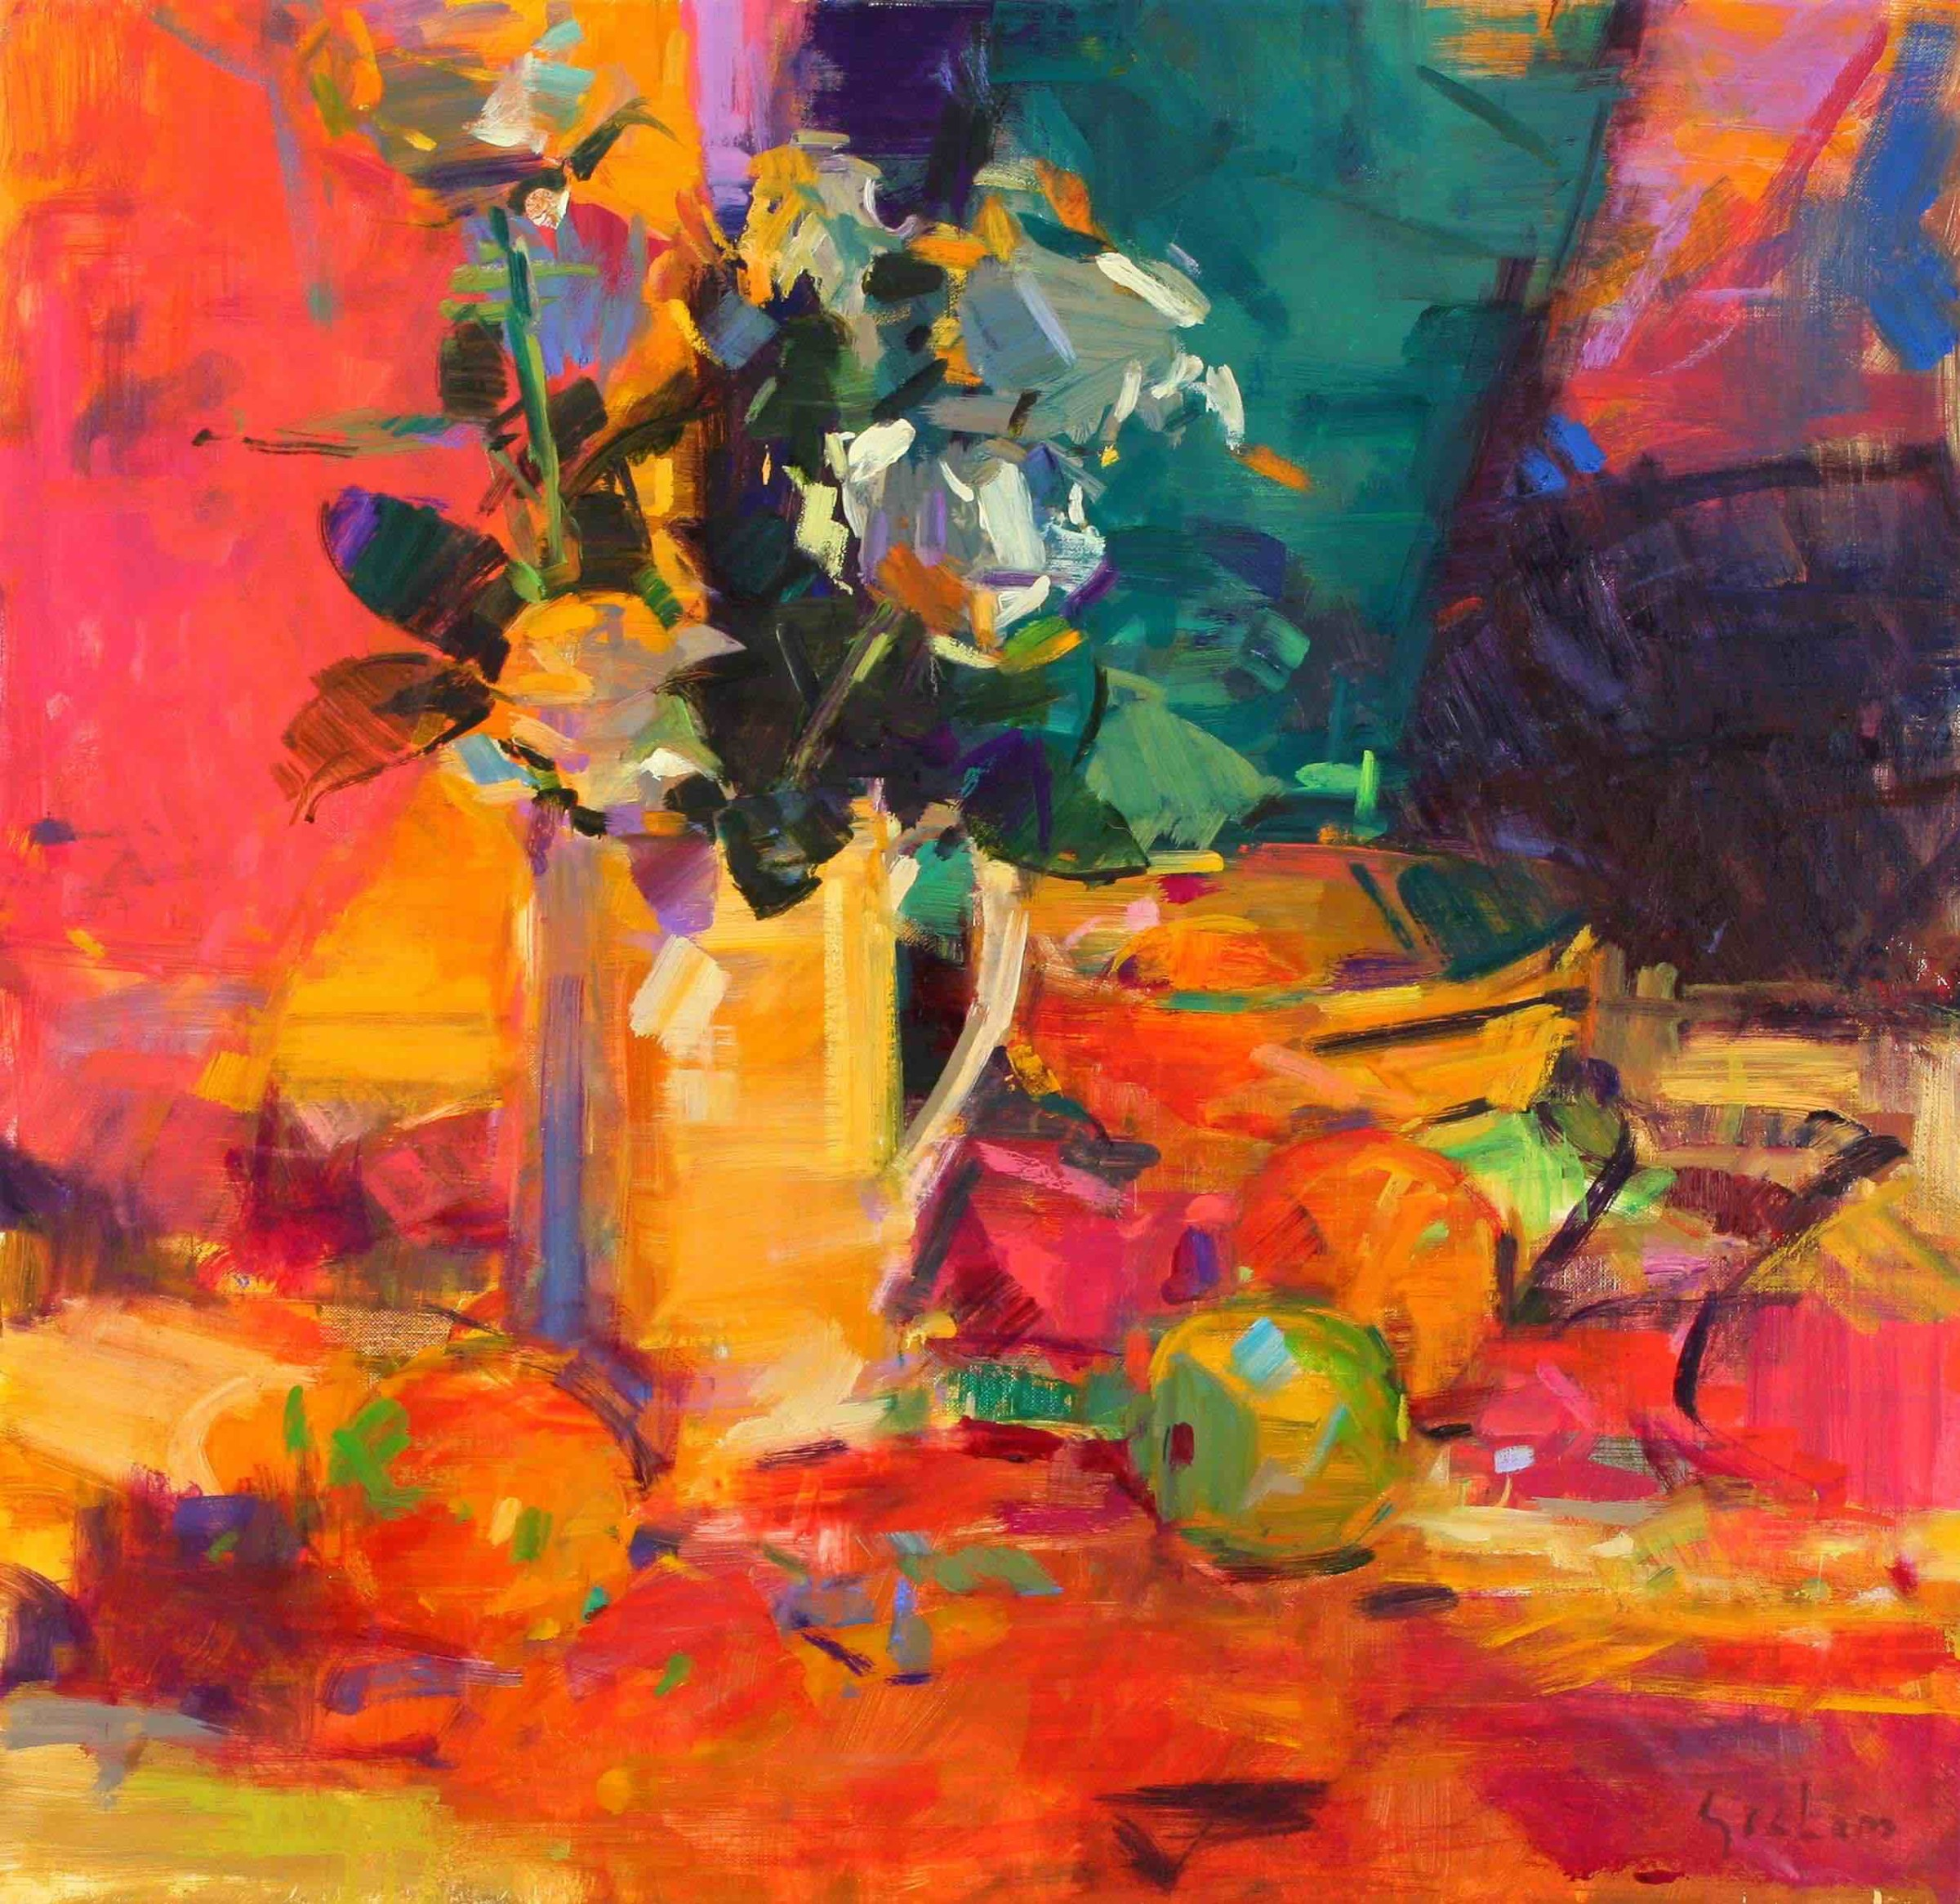 <span class=&#34;link fancybox-details-link&#34;><a href=&#34;/artists/31-peter-graham/works/2551-peter-graham-bouquet-with-fruits/&#34;>View Detail Page</a></span><div class=&#34;artist&#34;><strong>Peter Graham</strong></div> <div class=&#34;title&#34;><em>Bouquet with Fruits</em></div> <div class=&#34;medium&#34;>Oil on Canvas</div> <div class=&#34;dimensions&#34;>63 x 65 cm </div><div class=&#34;copyright_line&#34;>Copyright The Artist</div>